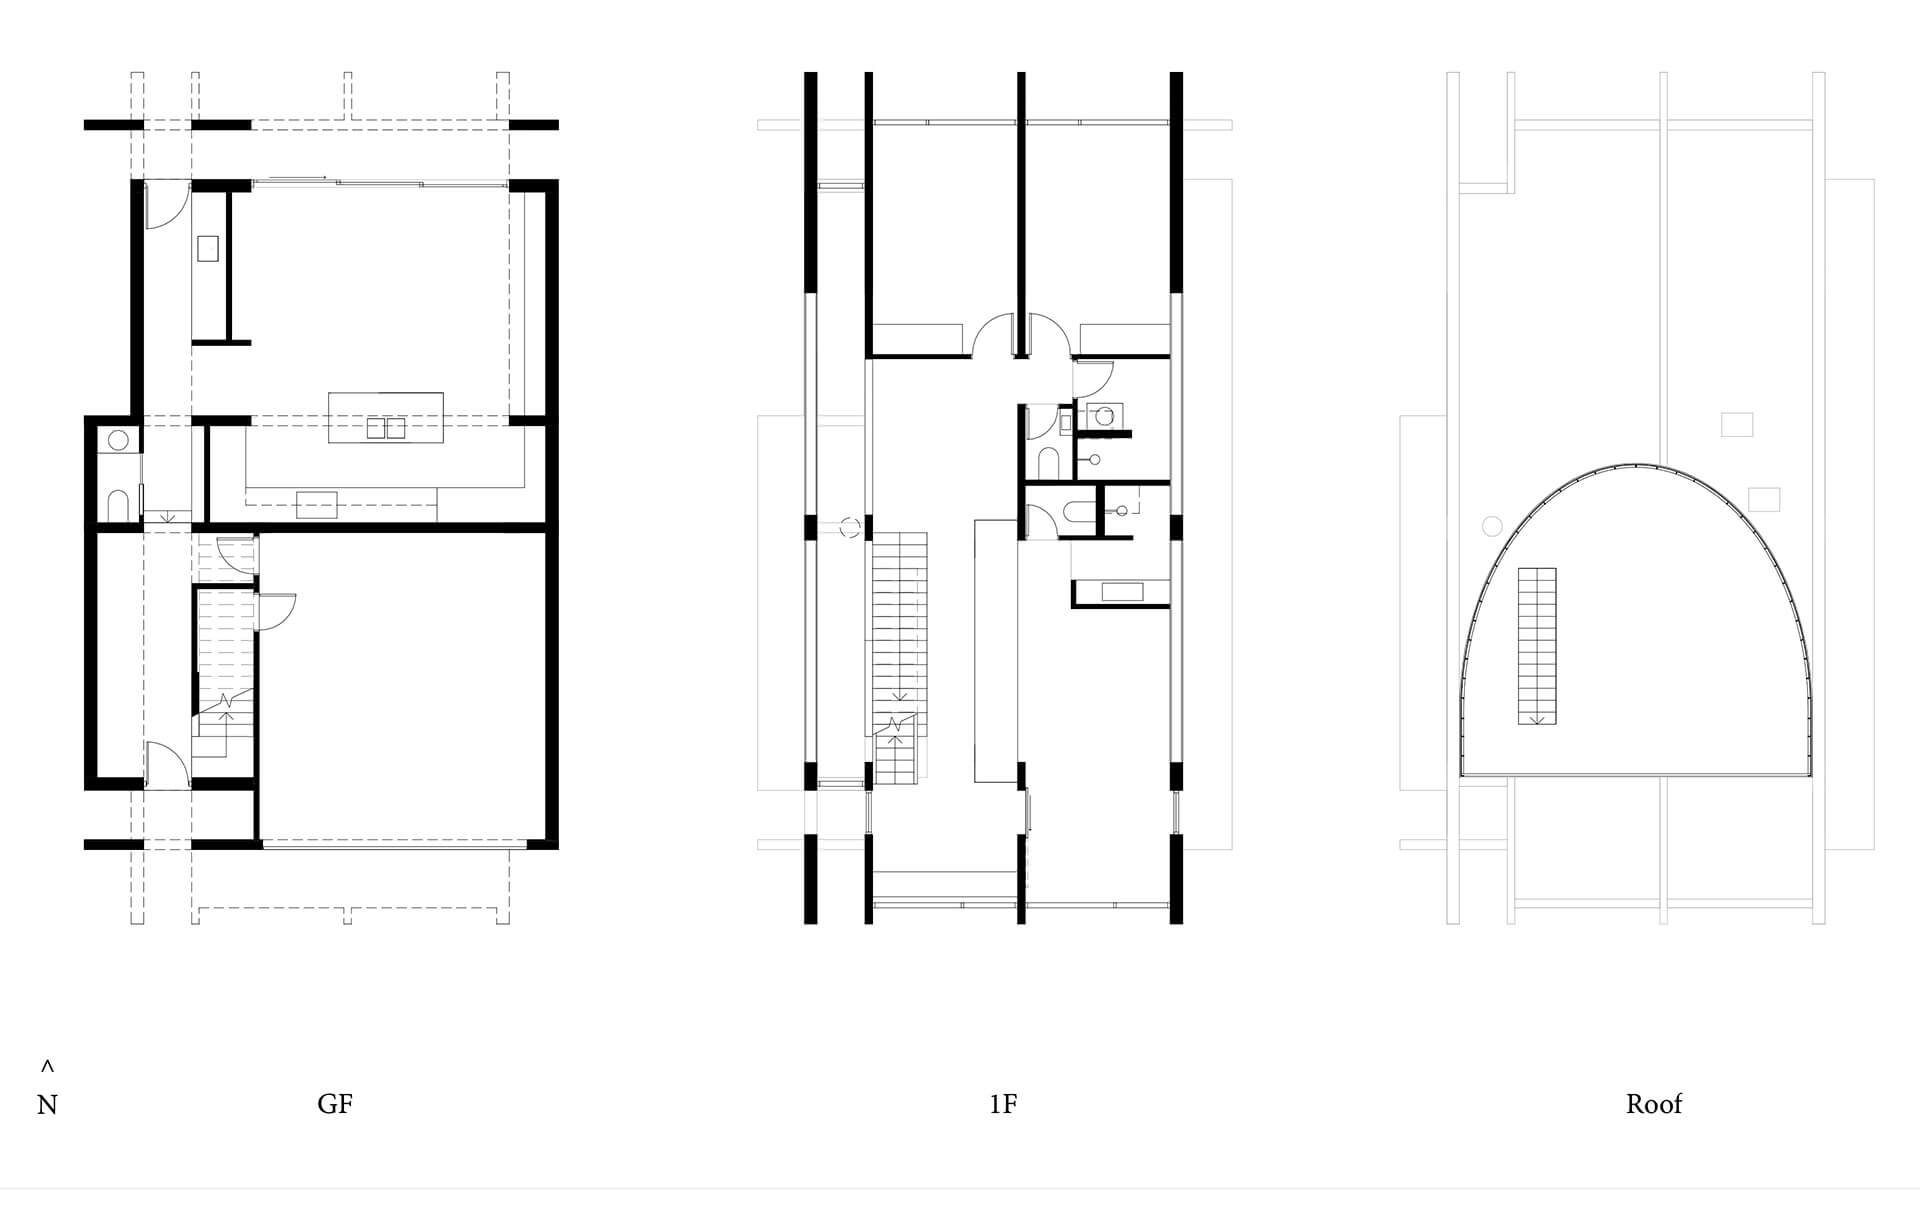 Floor plans of the North Perth House | North Perth House by Nic Brunsdon | STIRworld